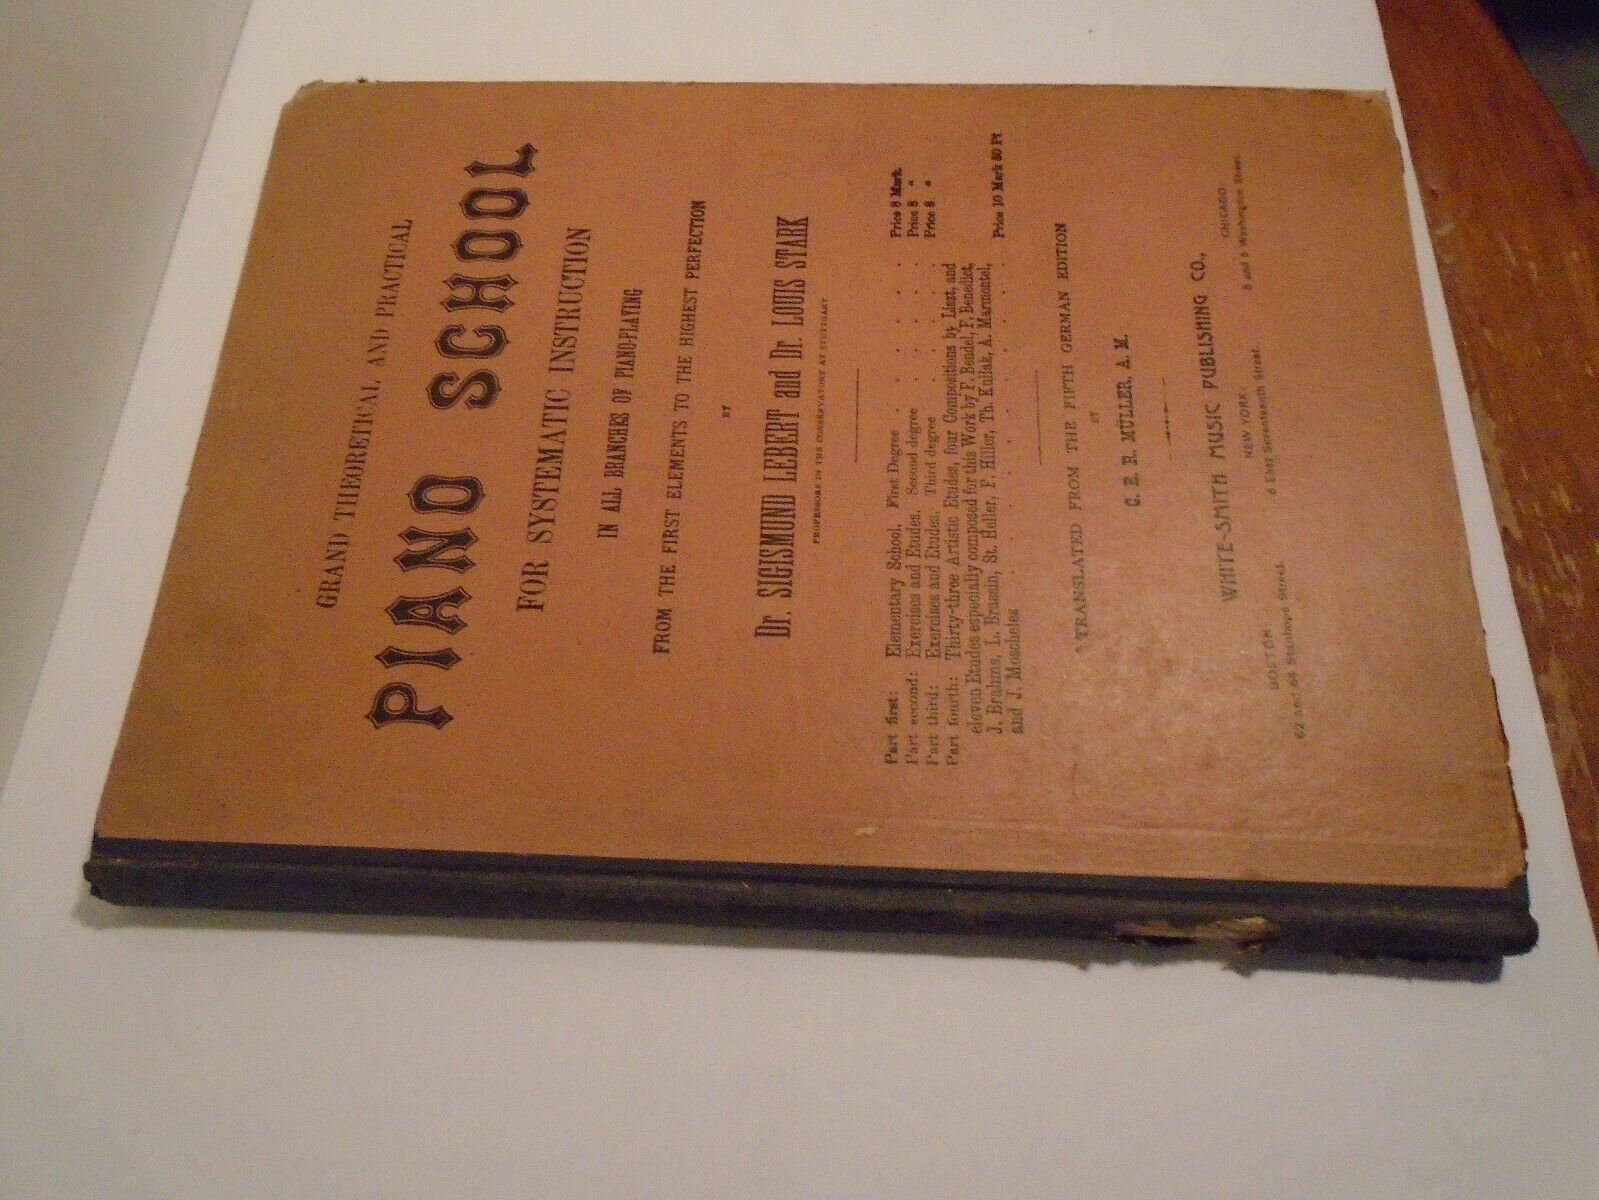 Antique Grand Theoretical And Practical Piano School Book - Dr. LEBERT Dr.STARK - $39.95